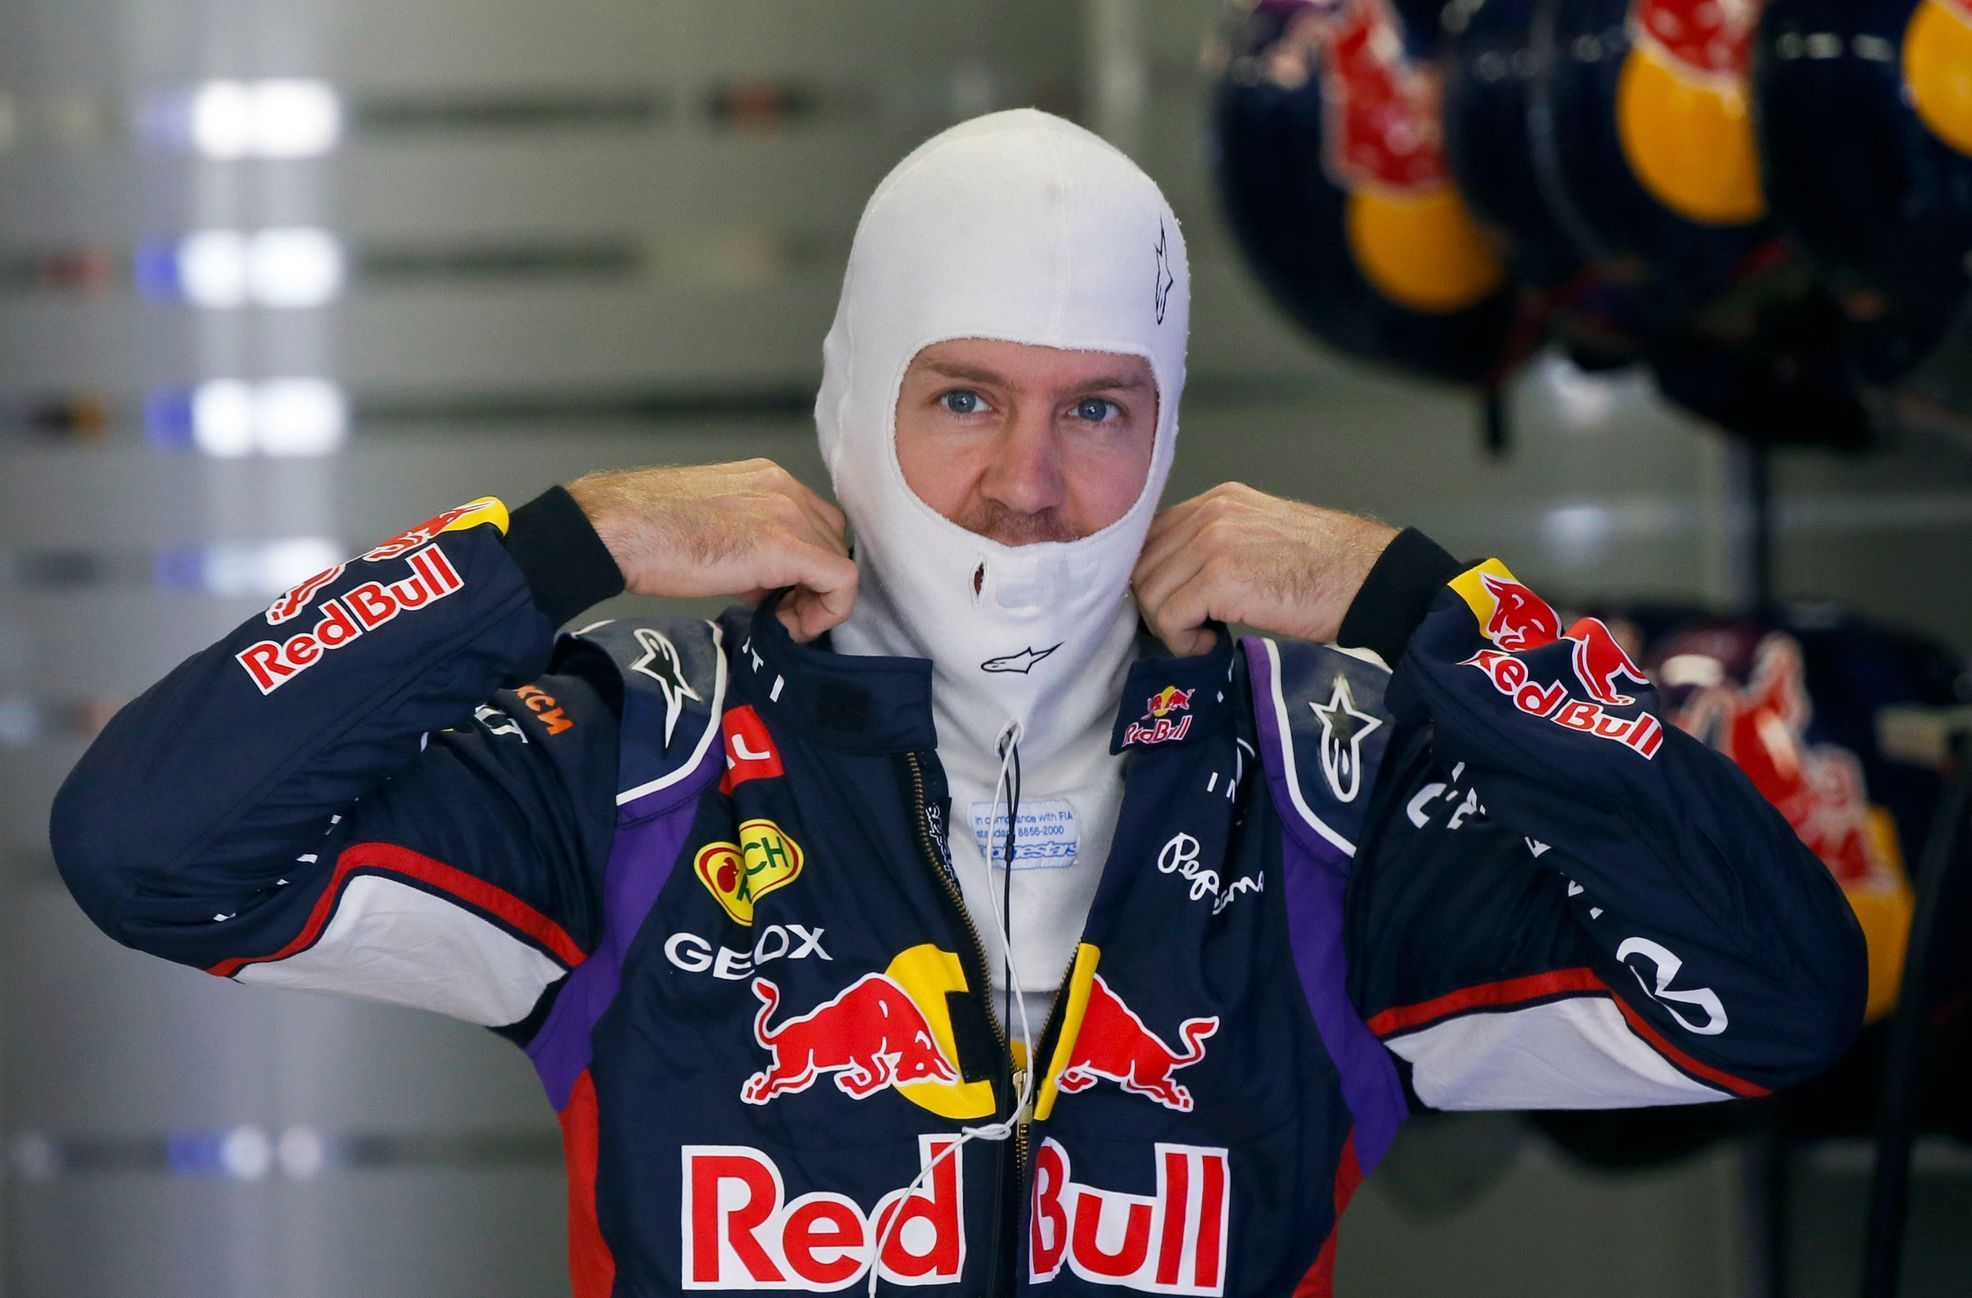 Red Bull Formula One driver Sebastian Vettel of Germany prepares for the third free practice session at the Russian F1 Grand Prix in the Sochi Autodrom circuit